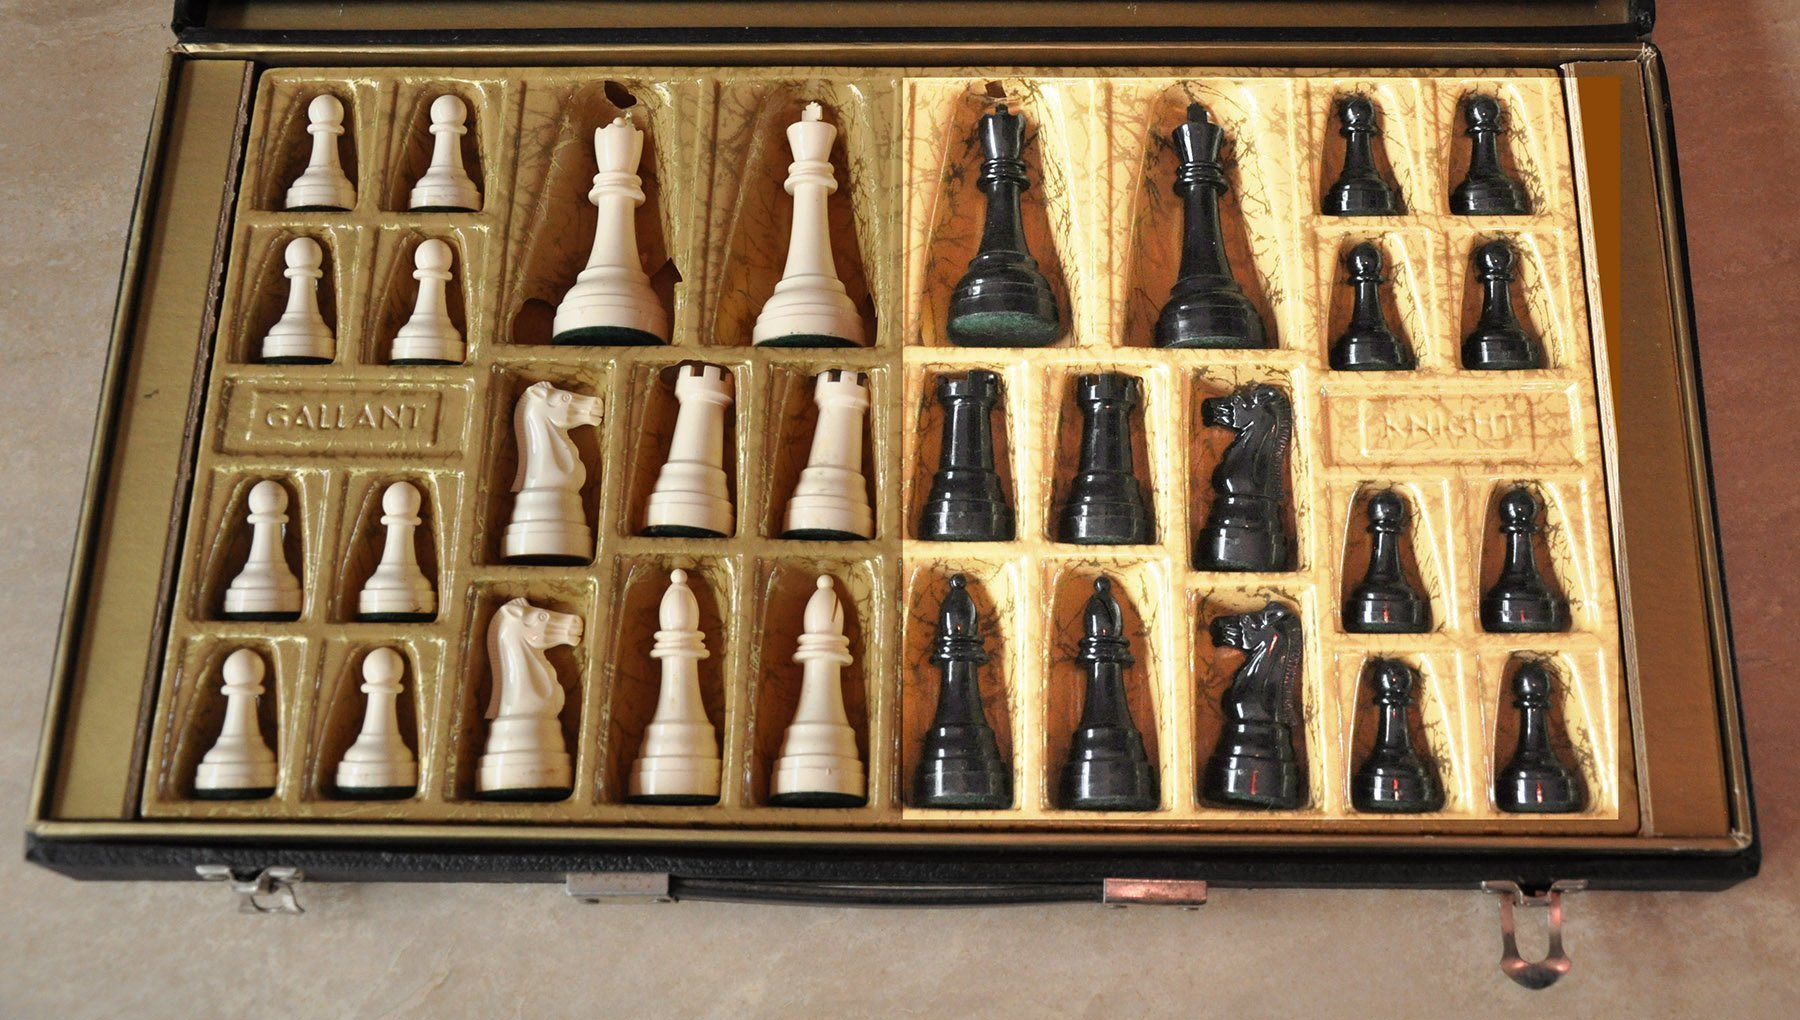 Vintage Gallant Knight Black Small Tournament Plastic Chess Set